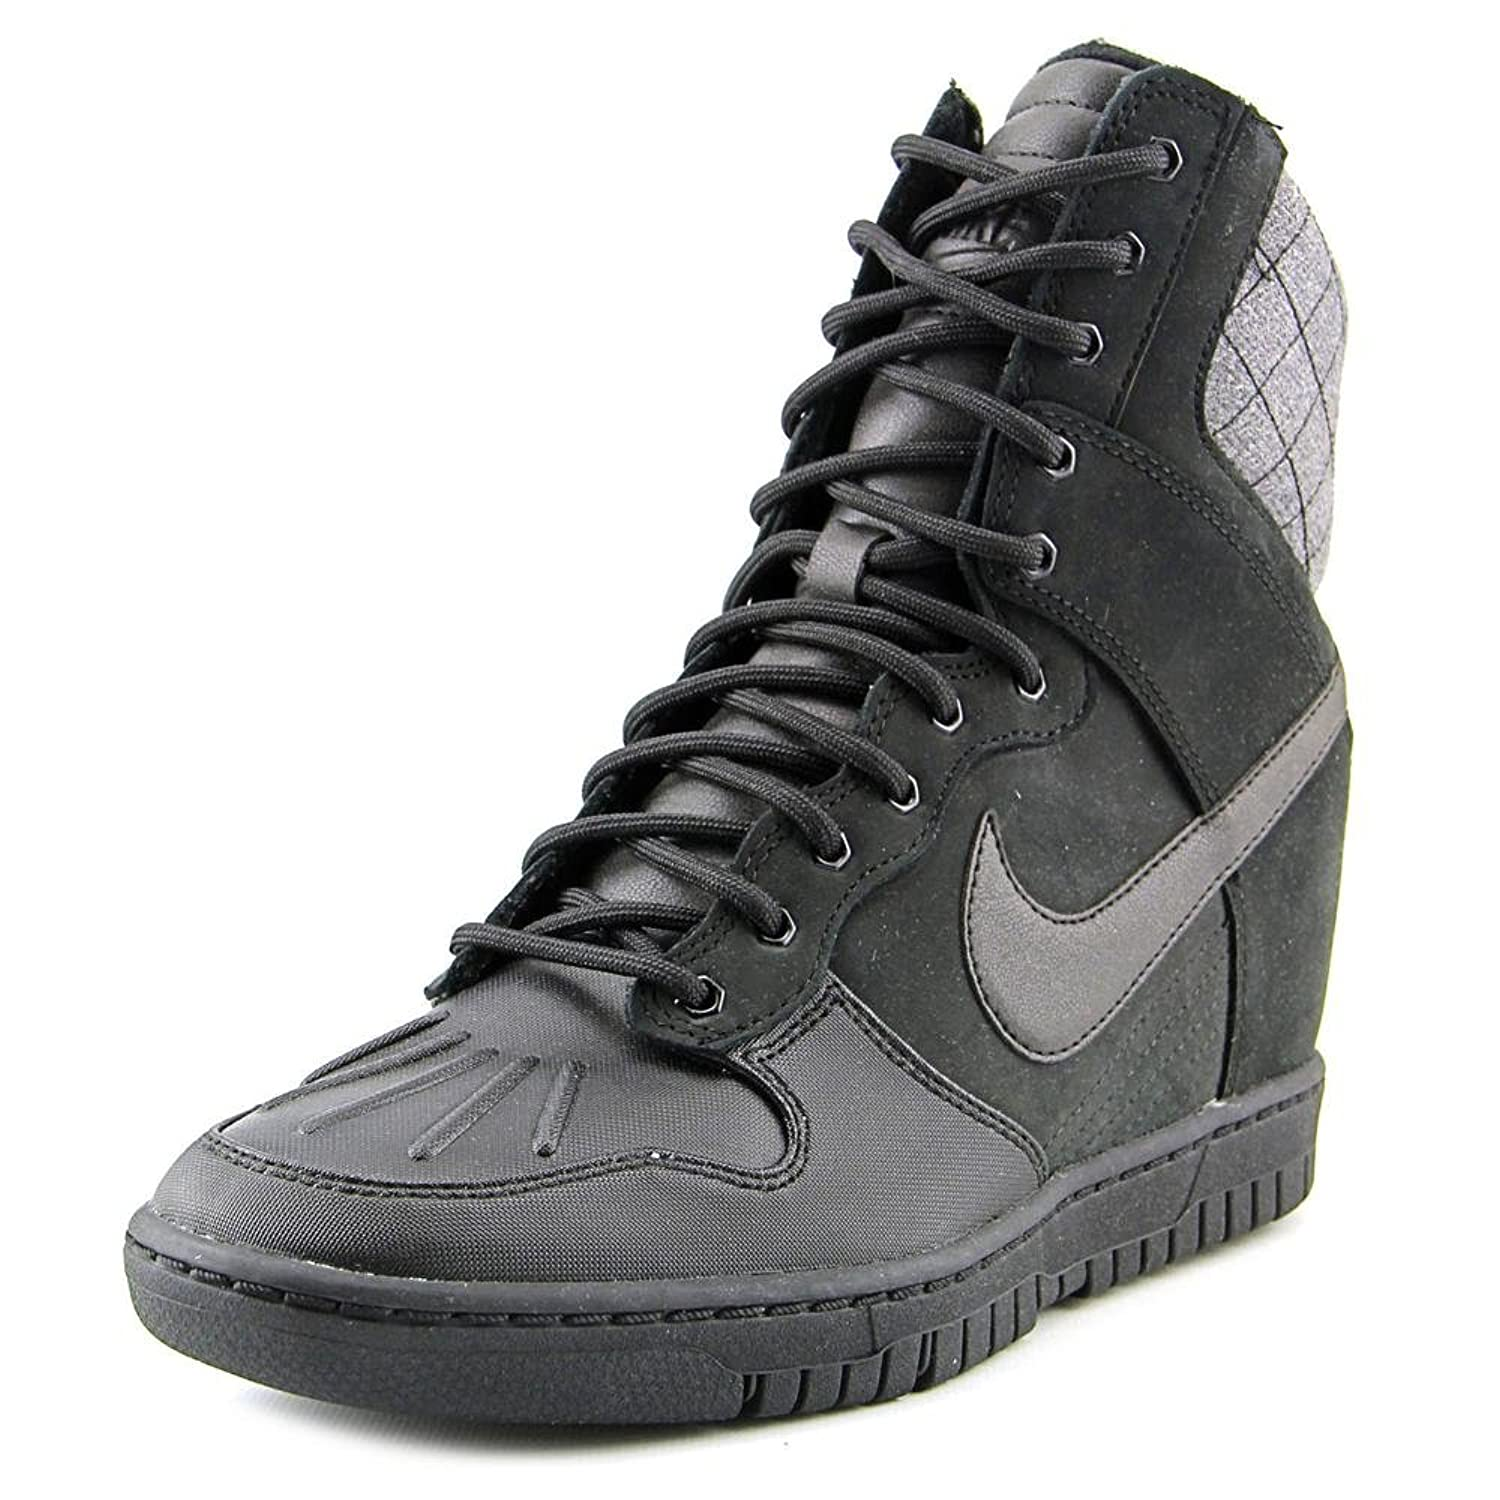 big sale 4bb86 88a01 NIke Women s Sky Hi Sneakerboot 2.0 Wedge High Fashion Shoe